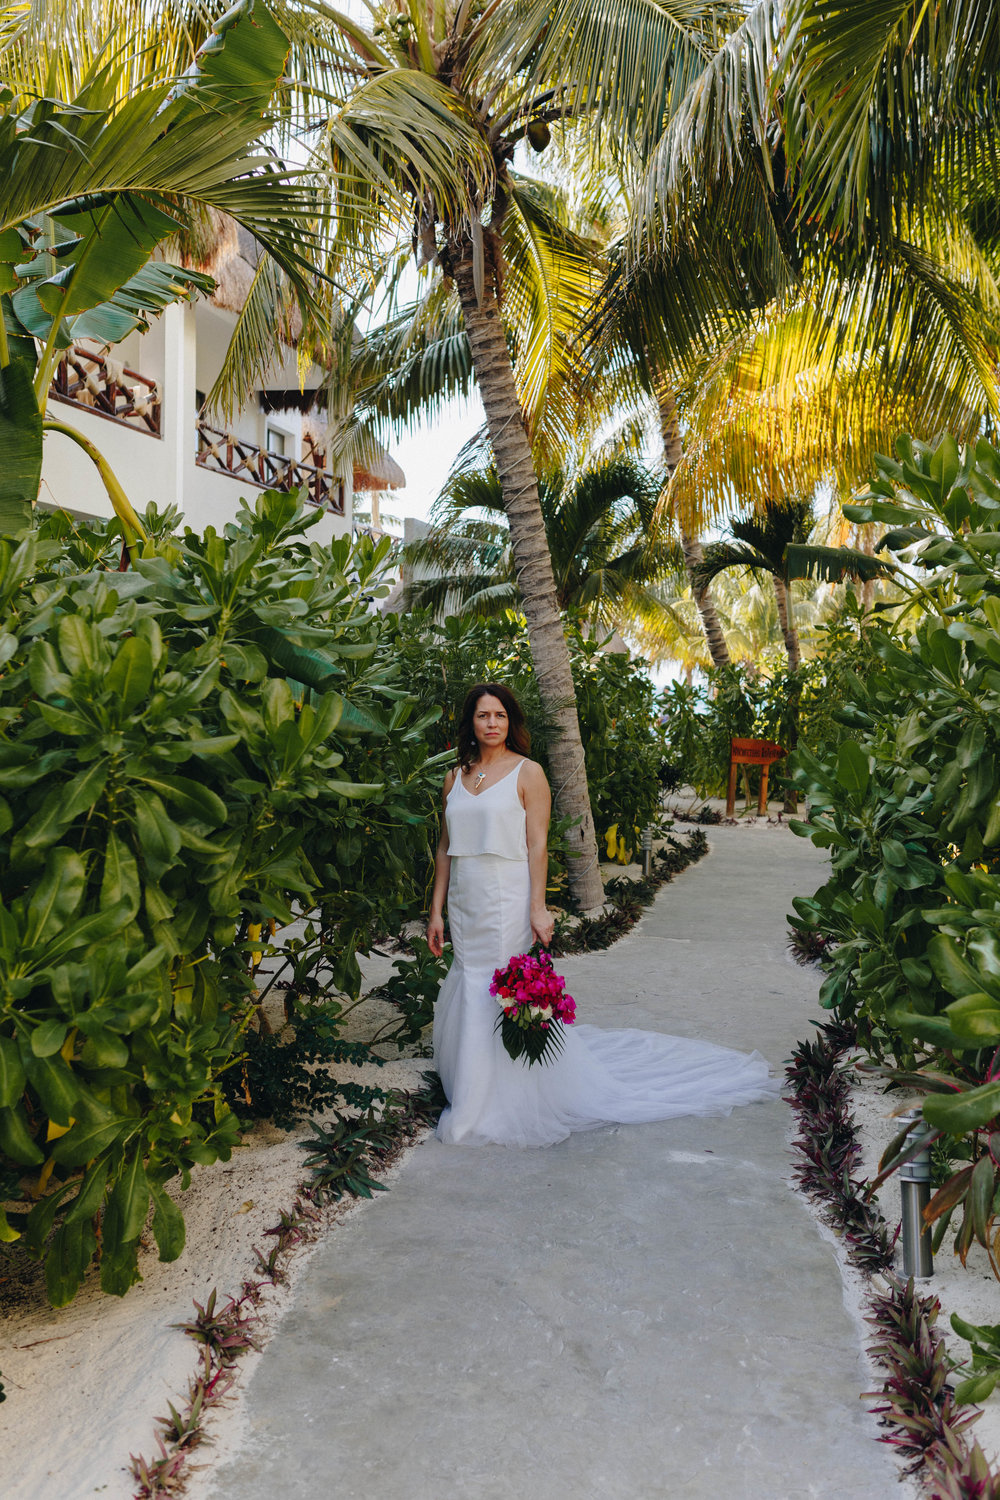 terwedo-destination-wedding-isla-mujeres-blog-177.jpg